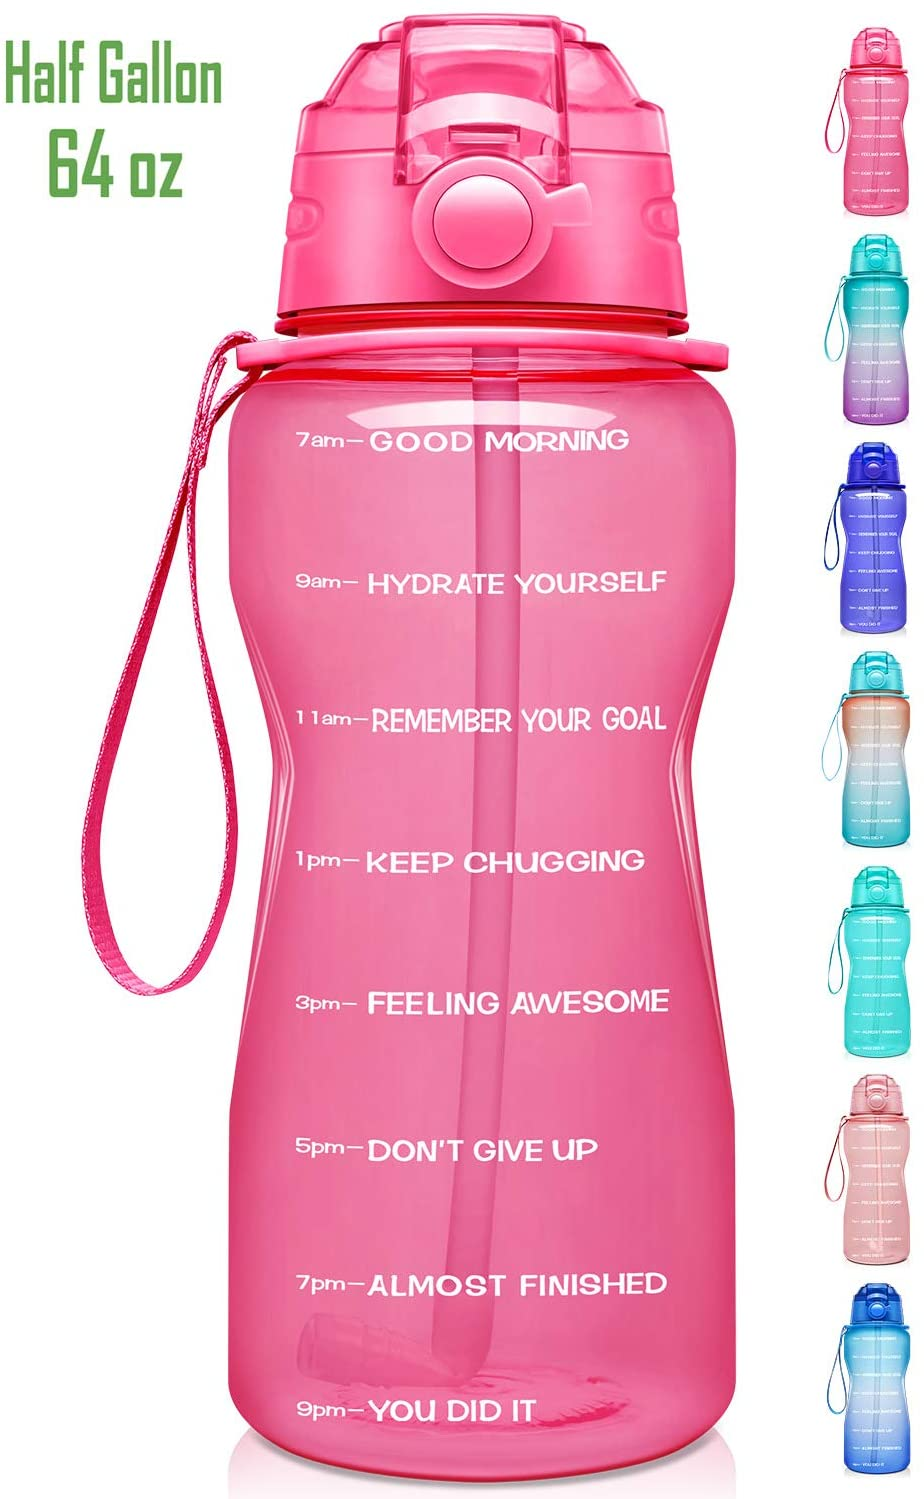 Giotto Large Half Gallon/64oz Motivational Water Bottle with Time Marker & Straw,Leakproof Tritan BPA Free Water Jug,Ensure You Drink Enough Water Daily for Fitness,Gym and Outdoor